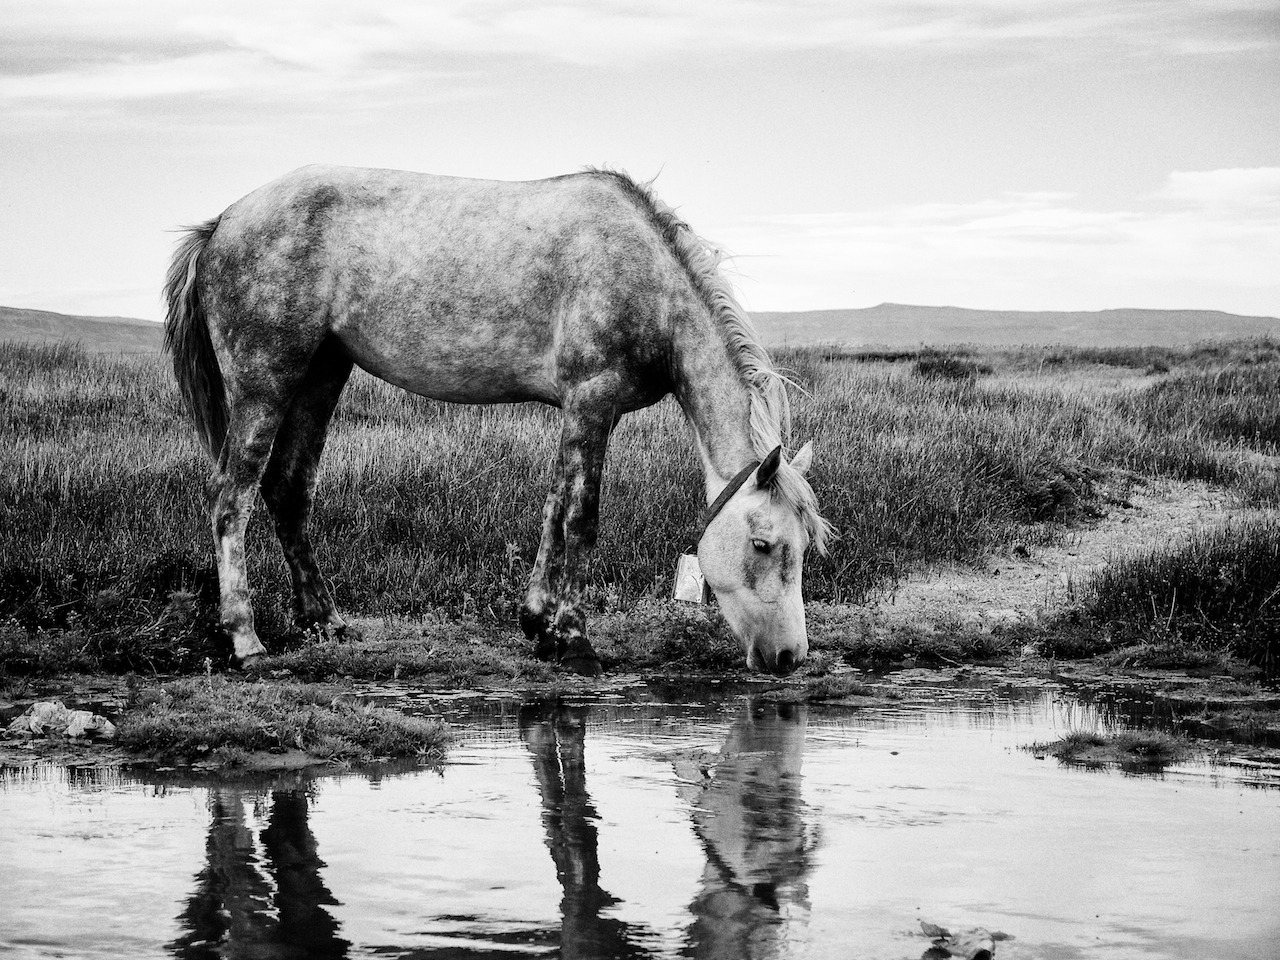 A horse drinking water in El Calafate, Argentina. December 13th, 2012.